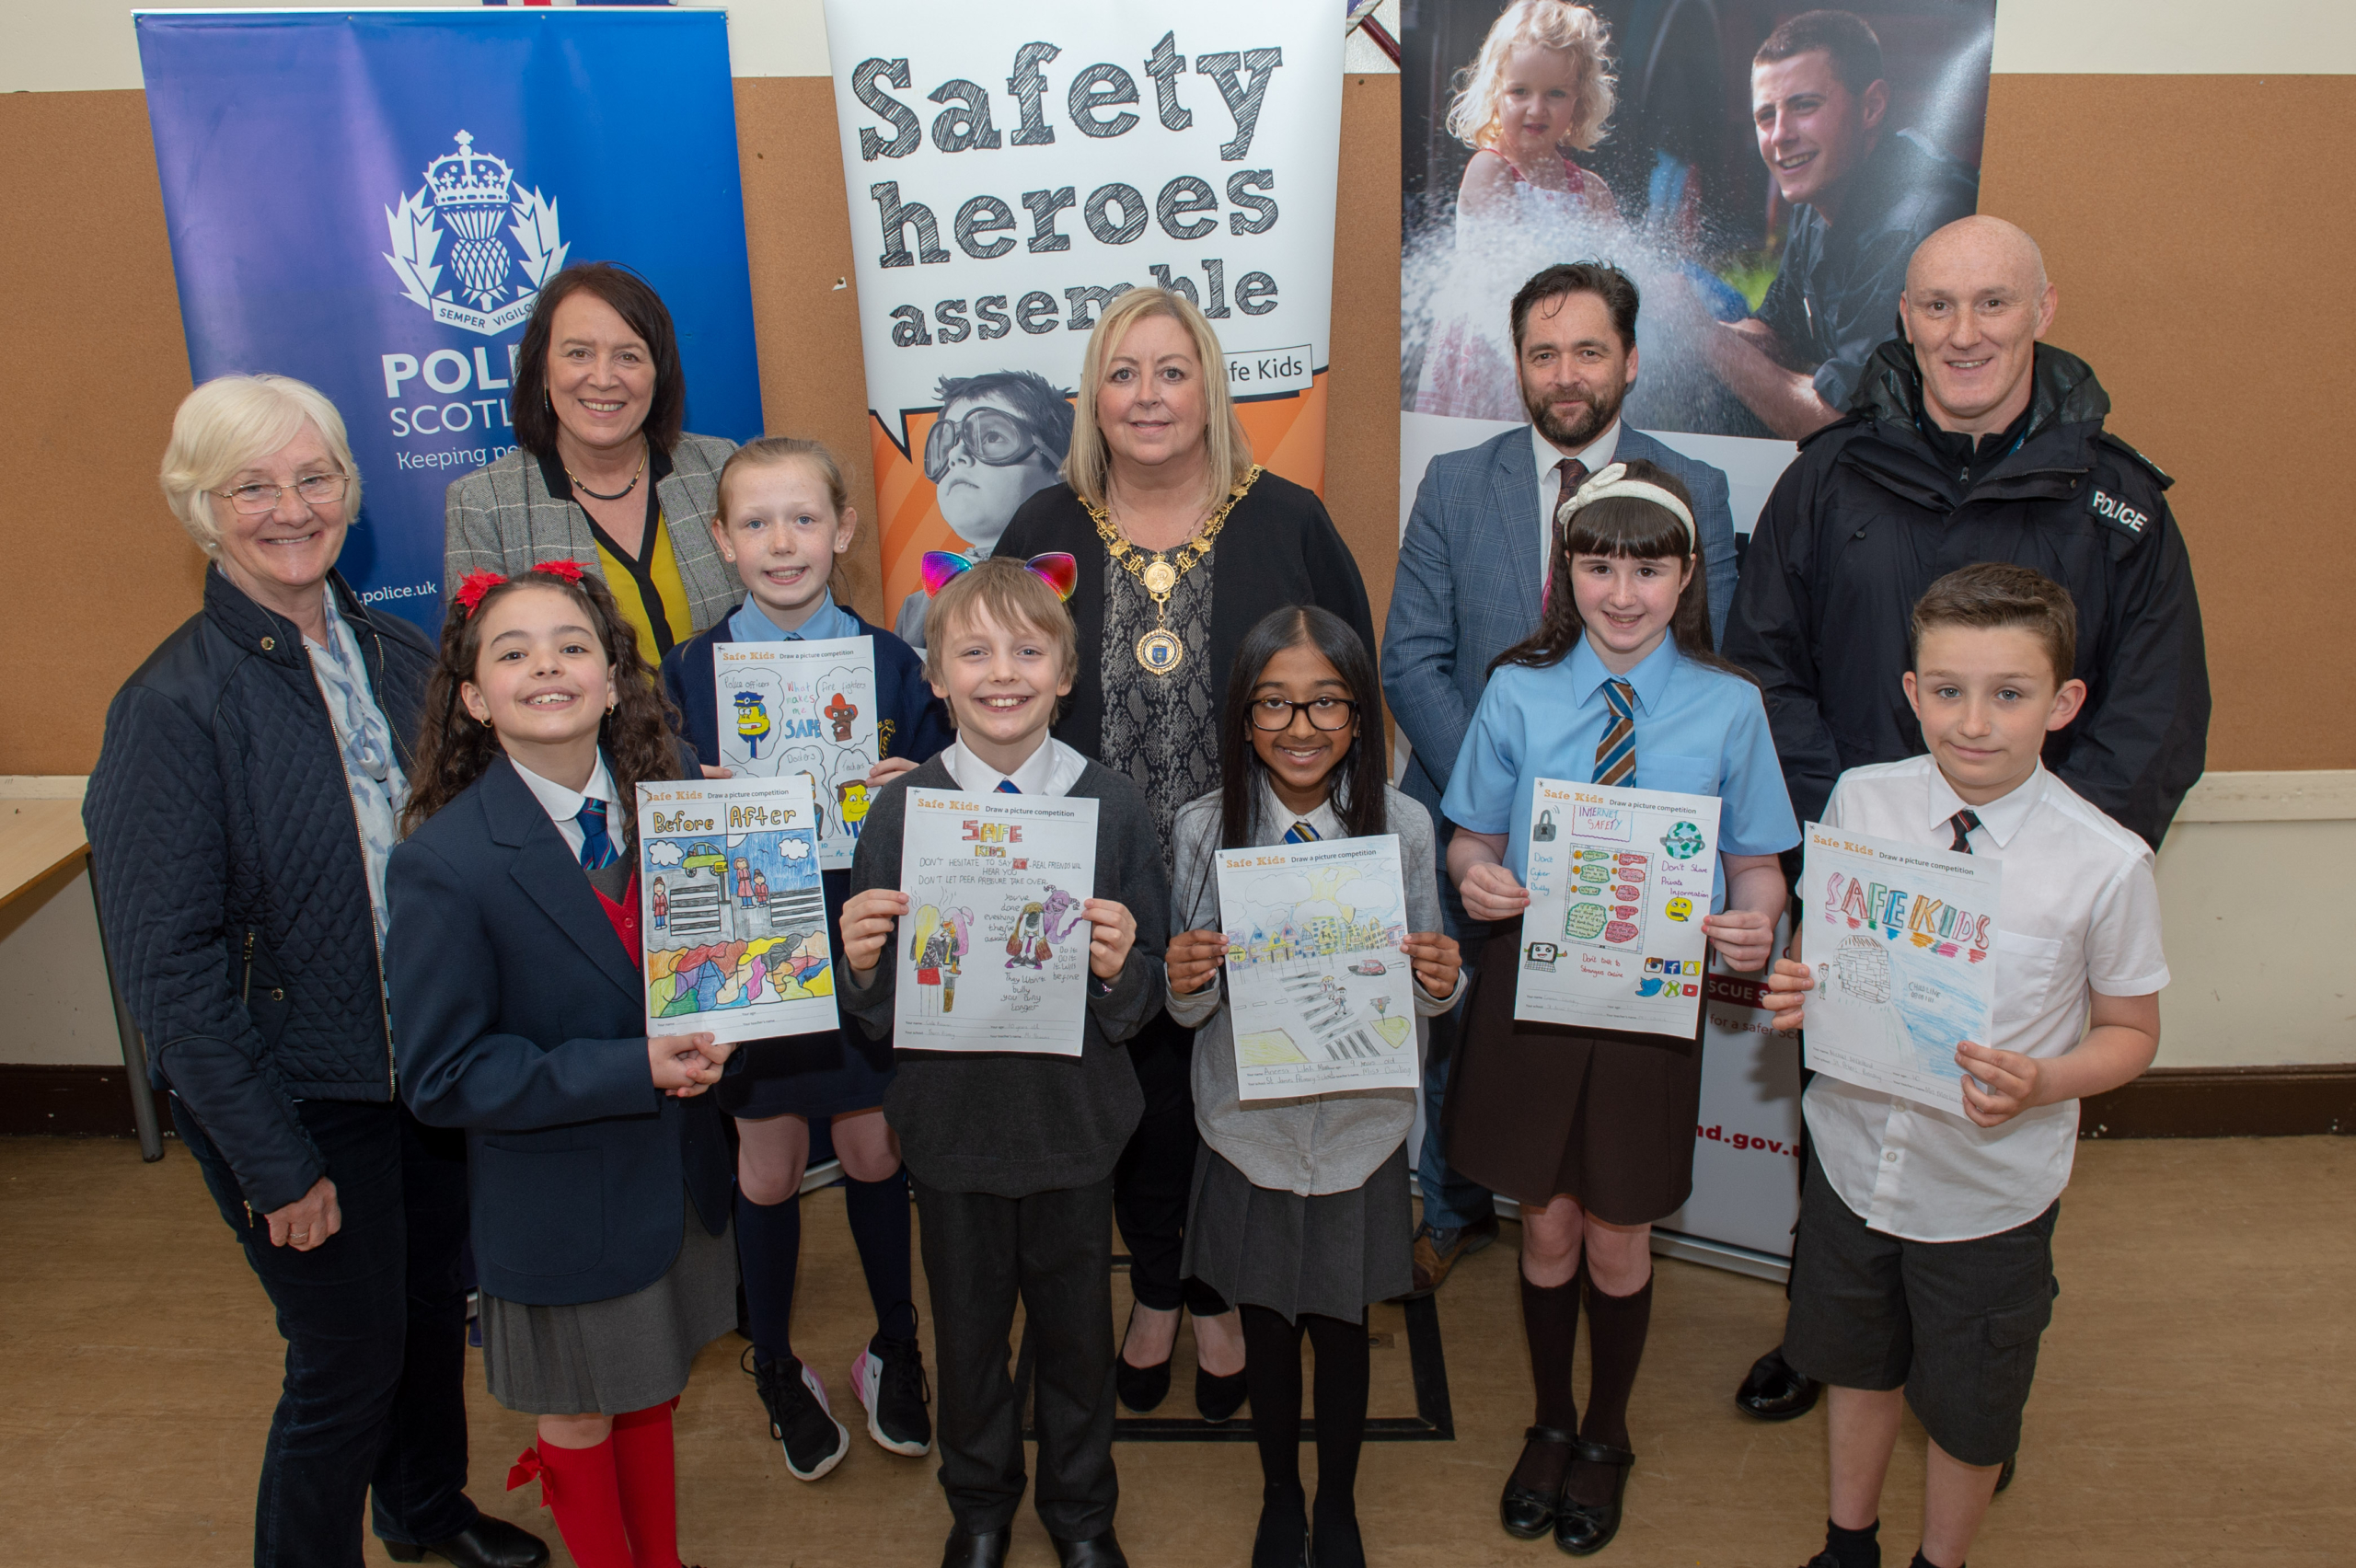 Safe Kids poster winners with the partners involved